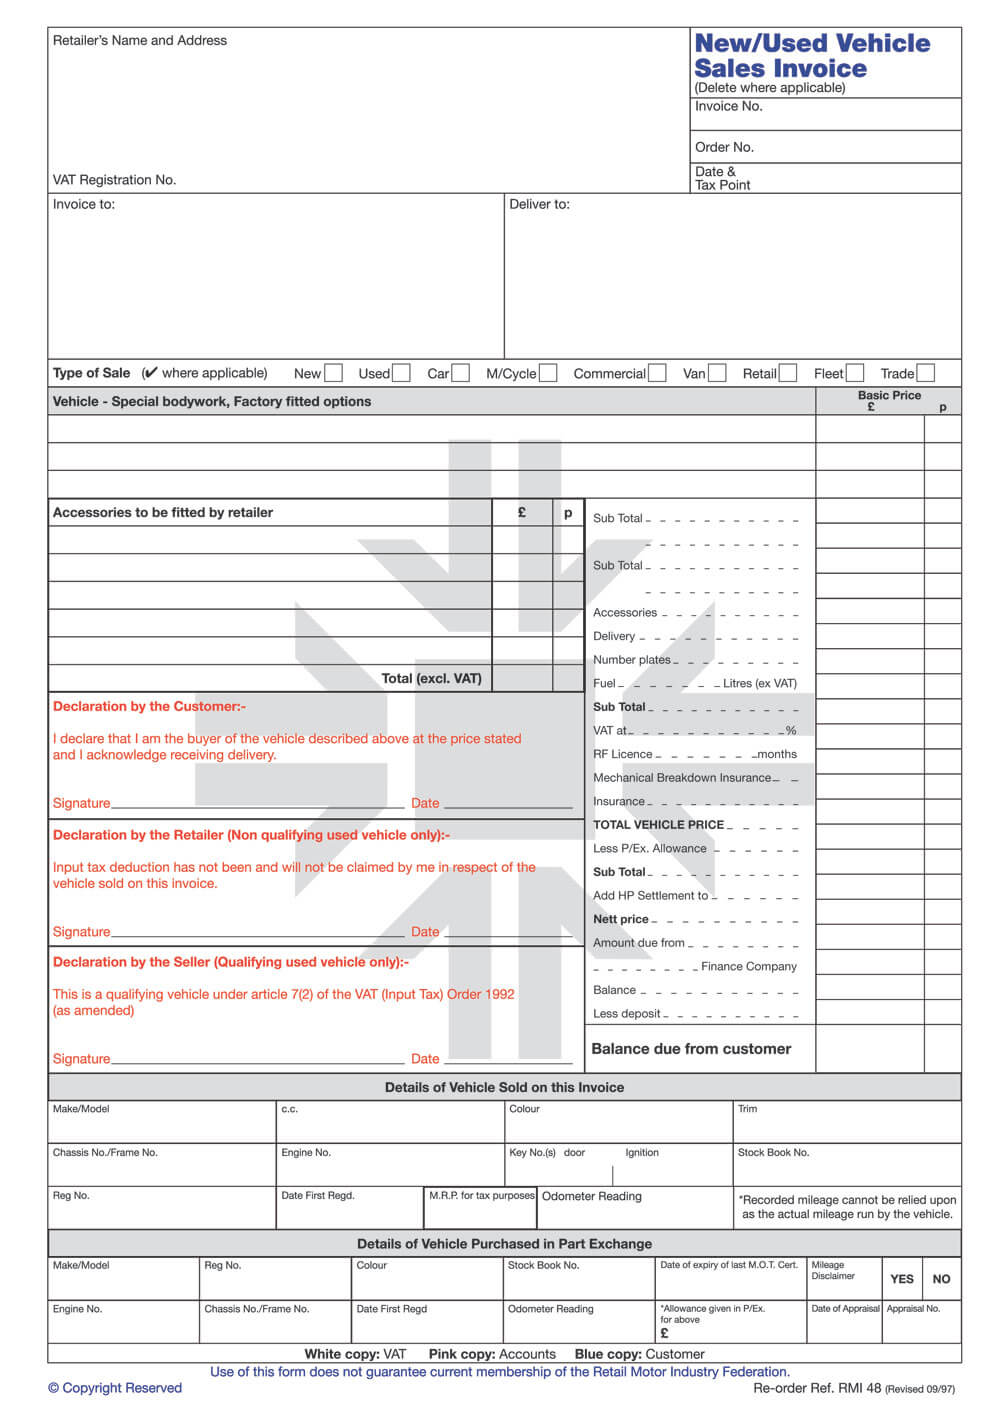 Rmi048 – New / Used Vehicle Sales Invoice Pad In Car Sales Invoice Template Uk